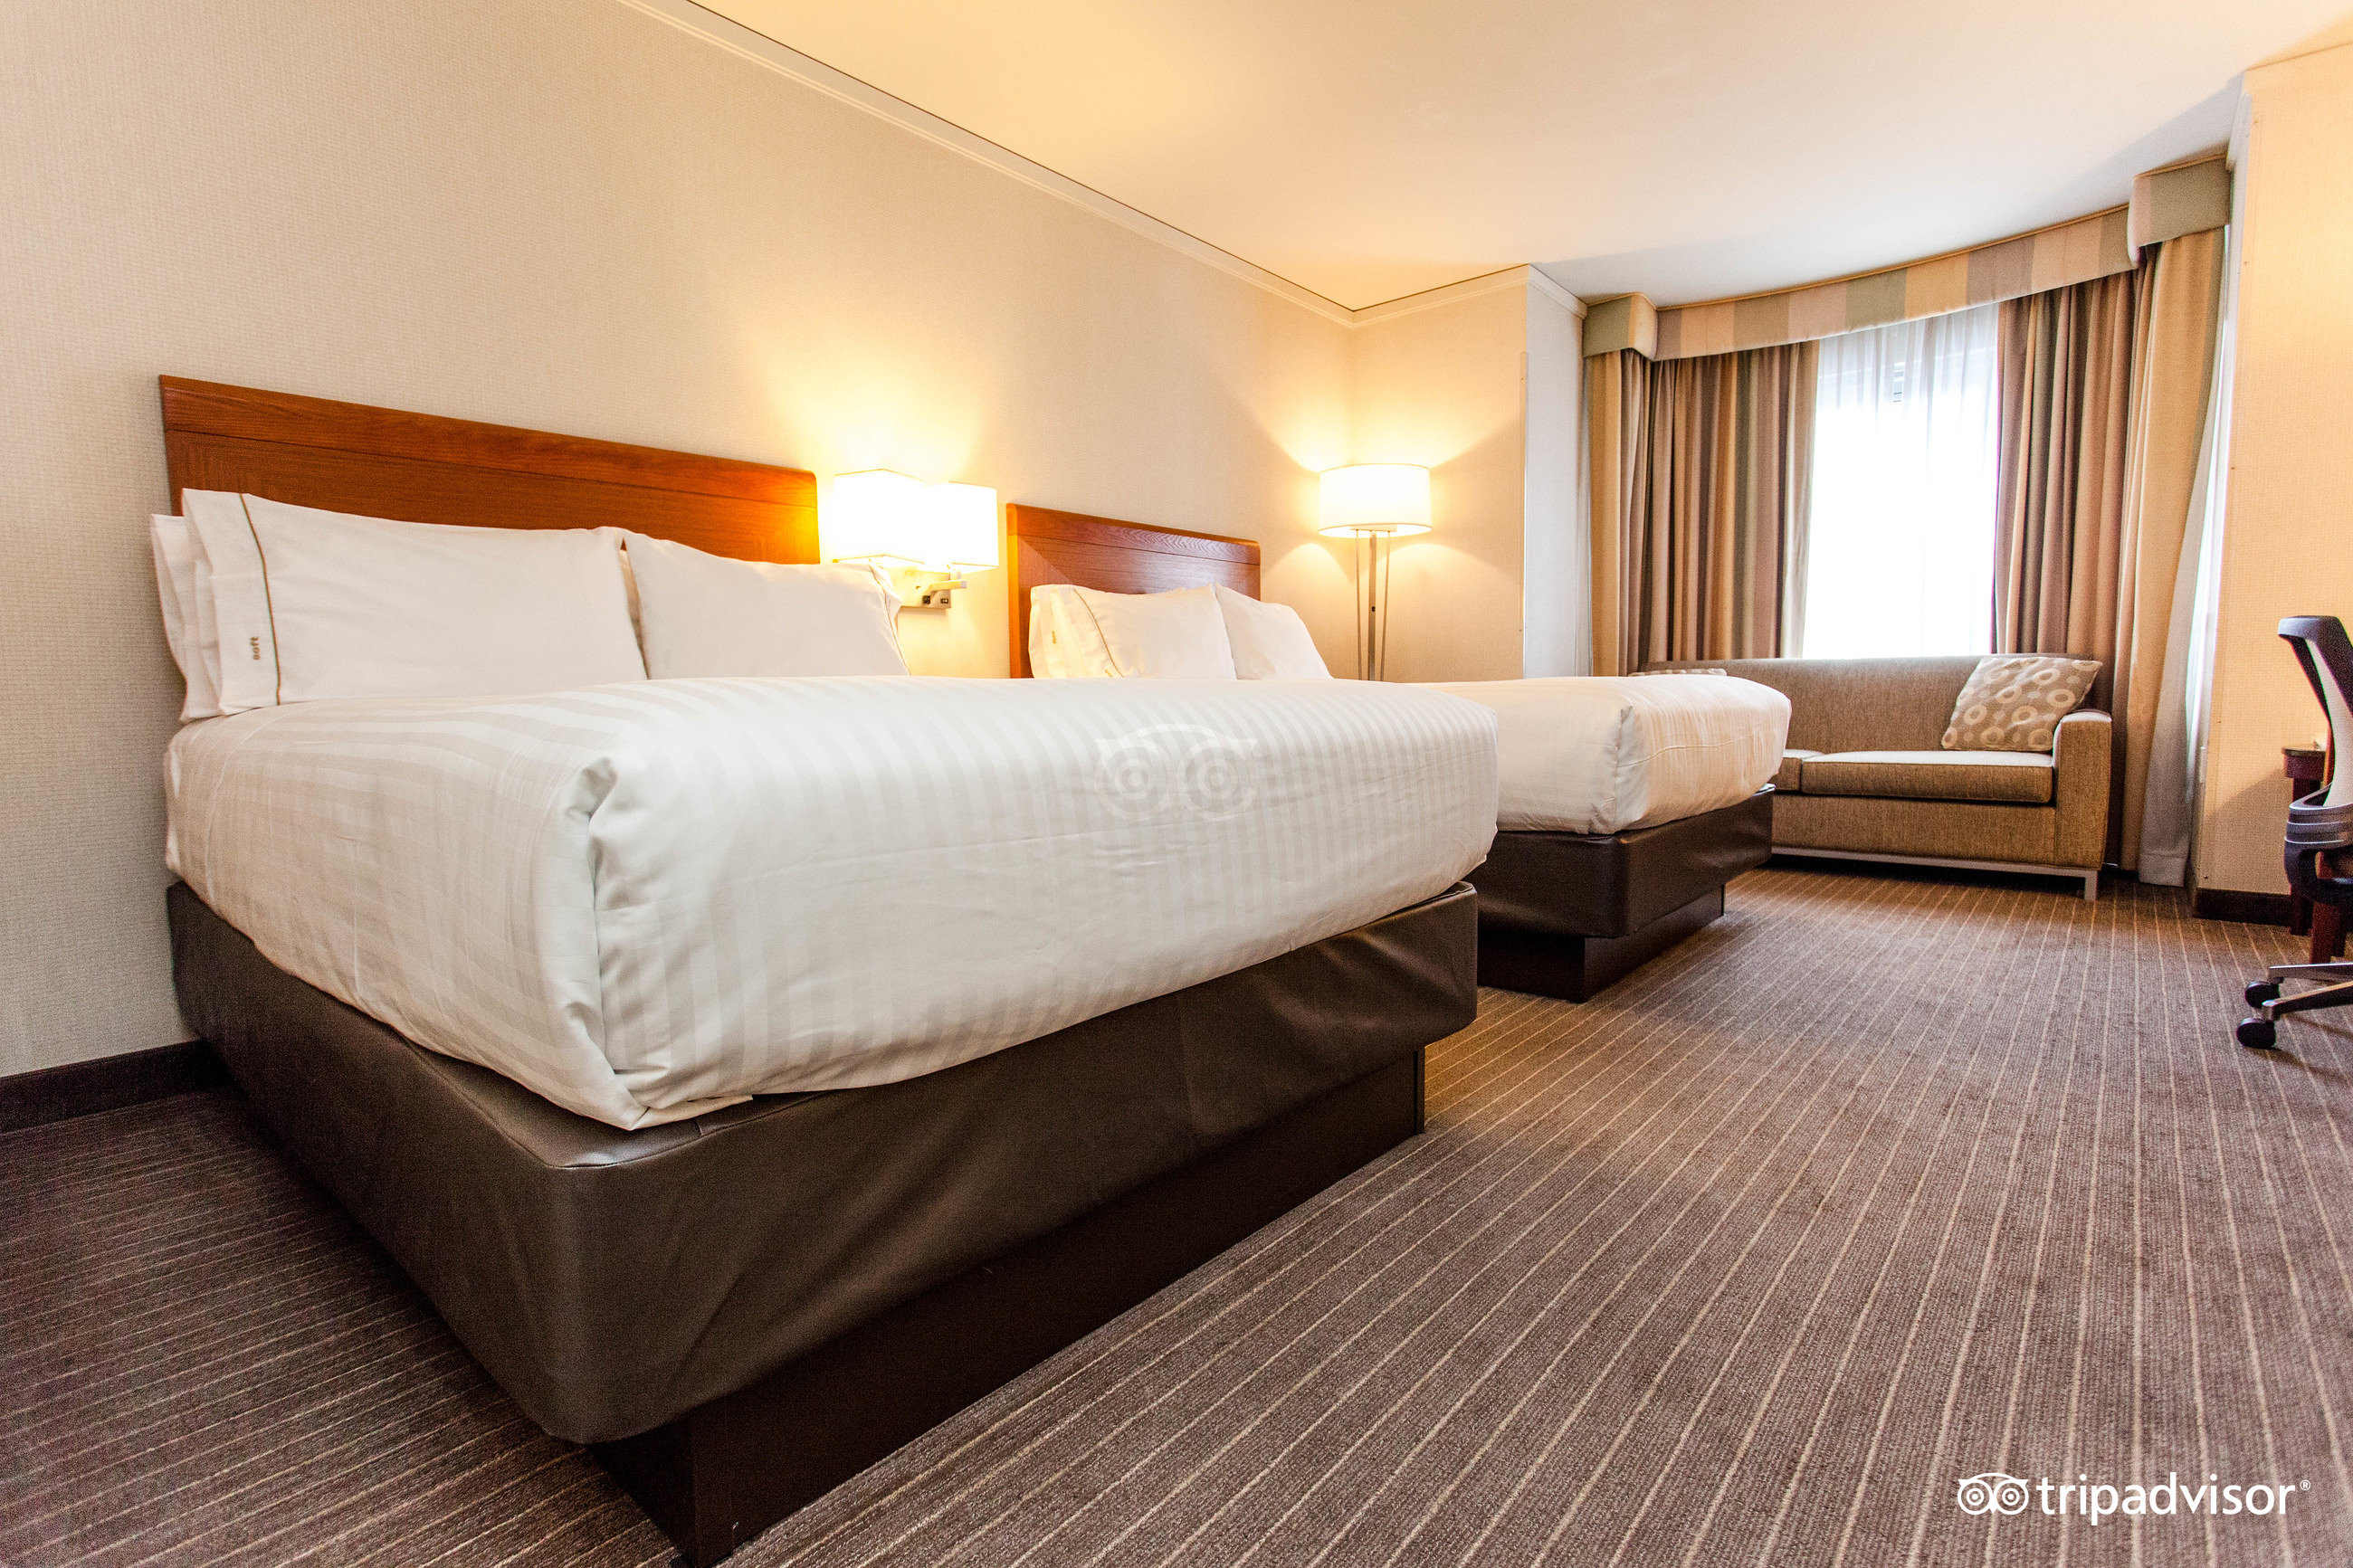 San Francisco Hotels | Comfort Inn San Francisco Hotel